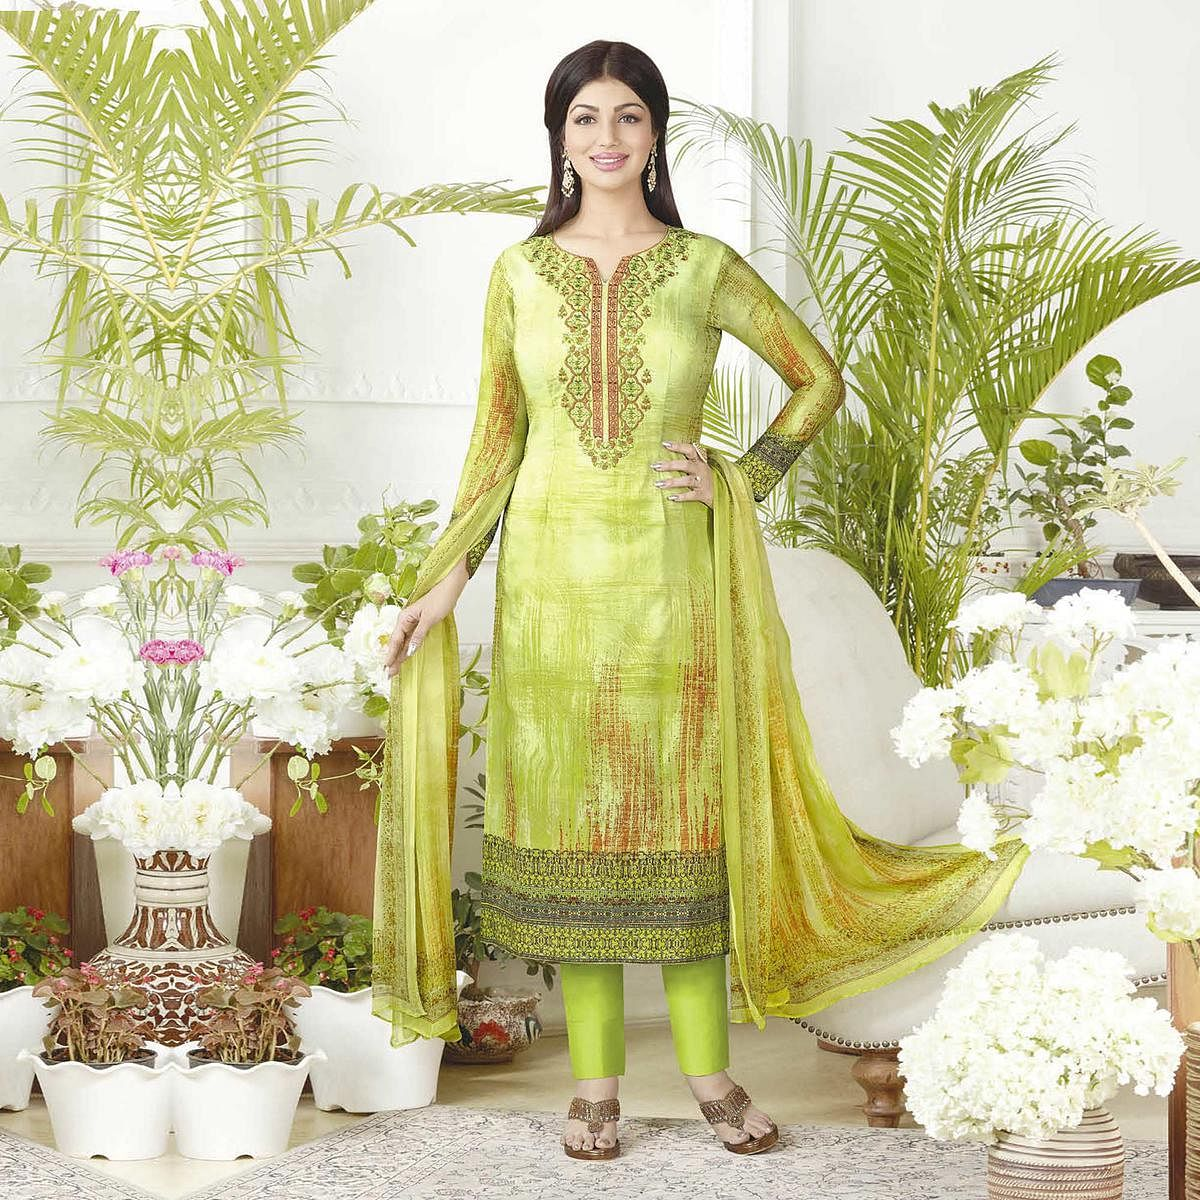 Charming Parrot Green Digital Printed Pure Lawn Cotton Dress Material